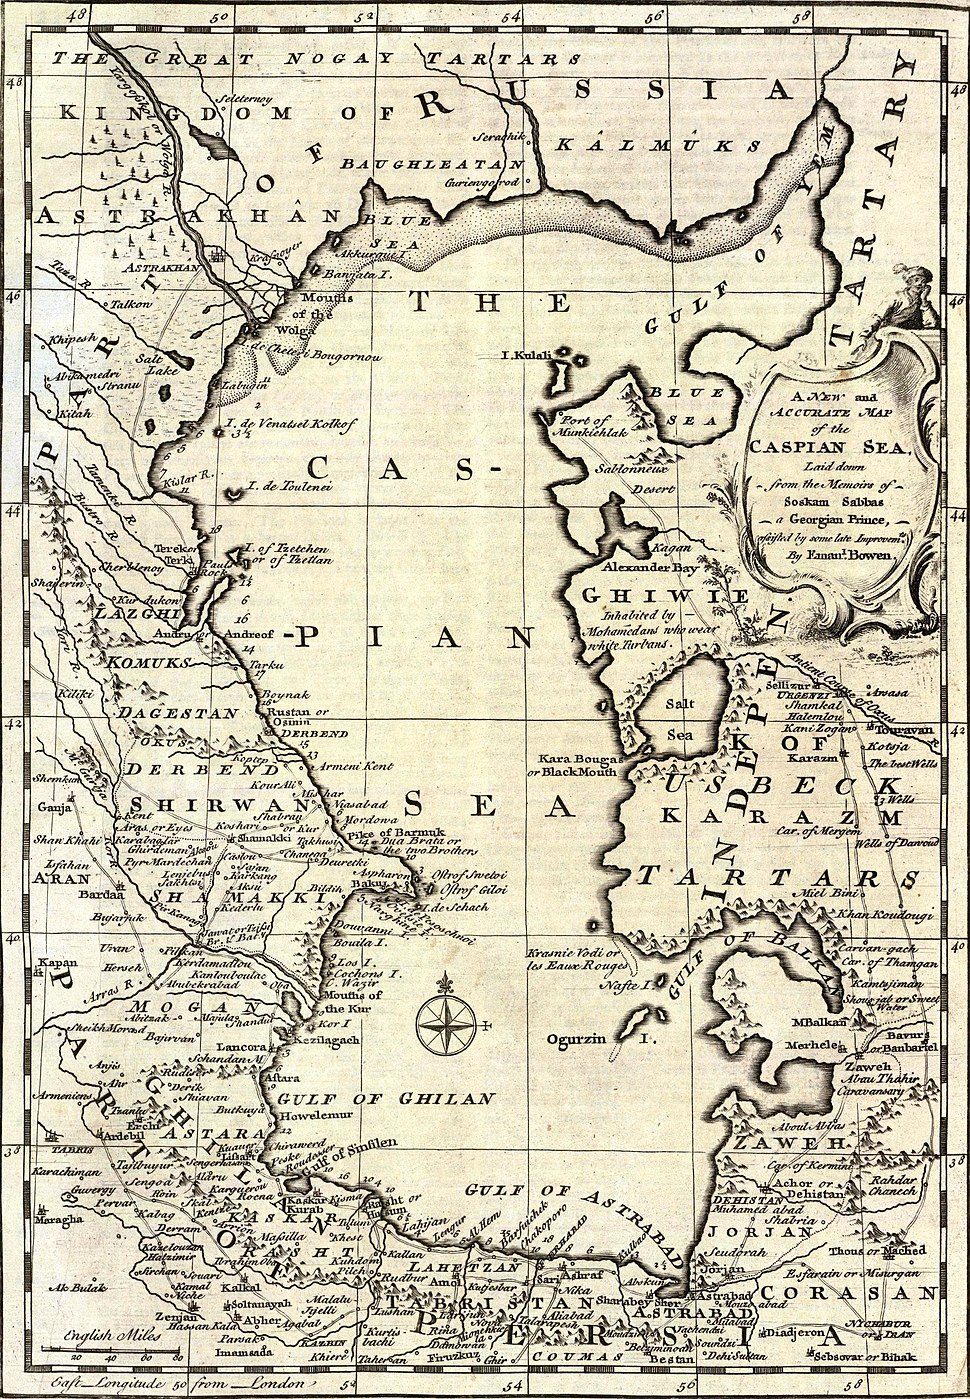 Bowen, Emanuel; Orbeliani, Sulxan-Saba. A new and accurate map of the Caspian Sea. 1747. (A)